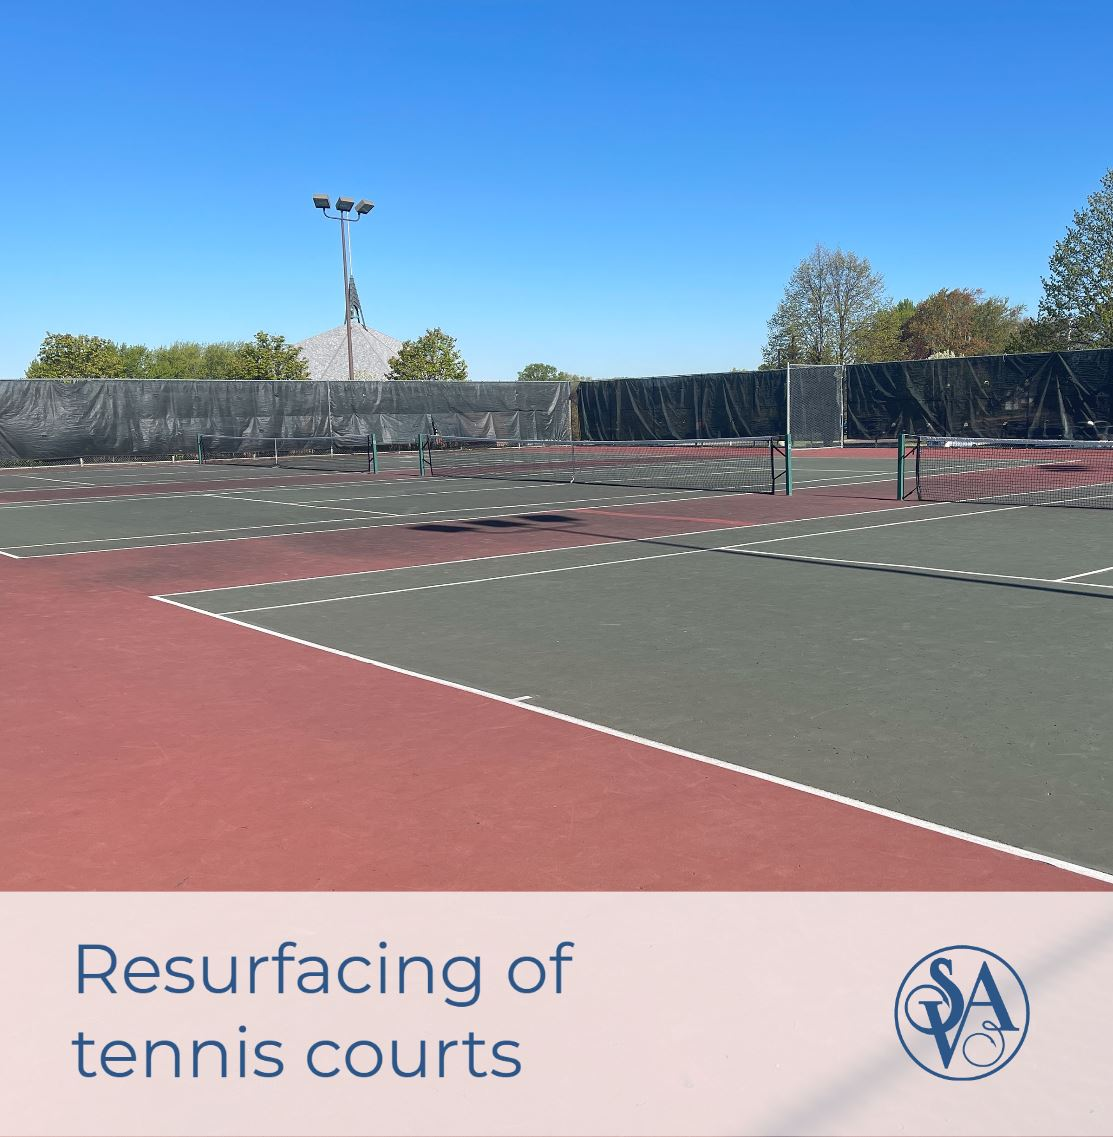 Resurfacing of tennis courts